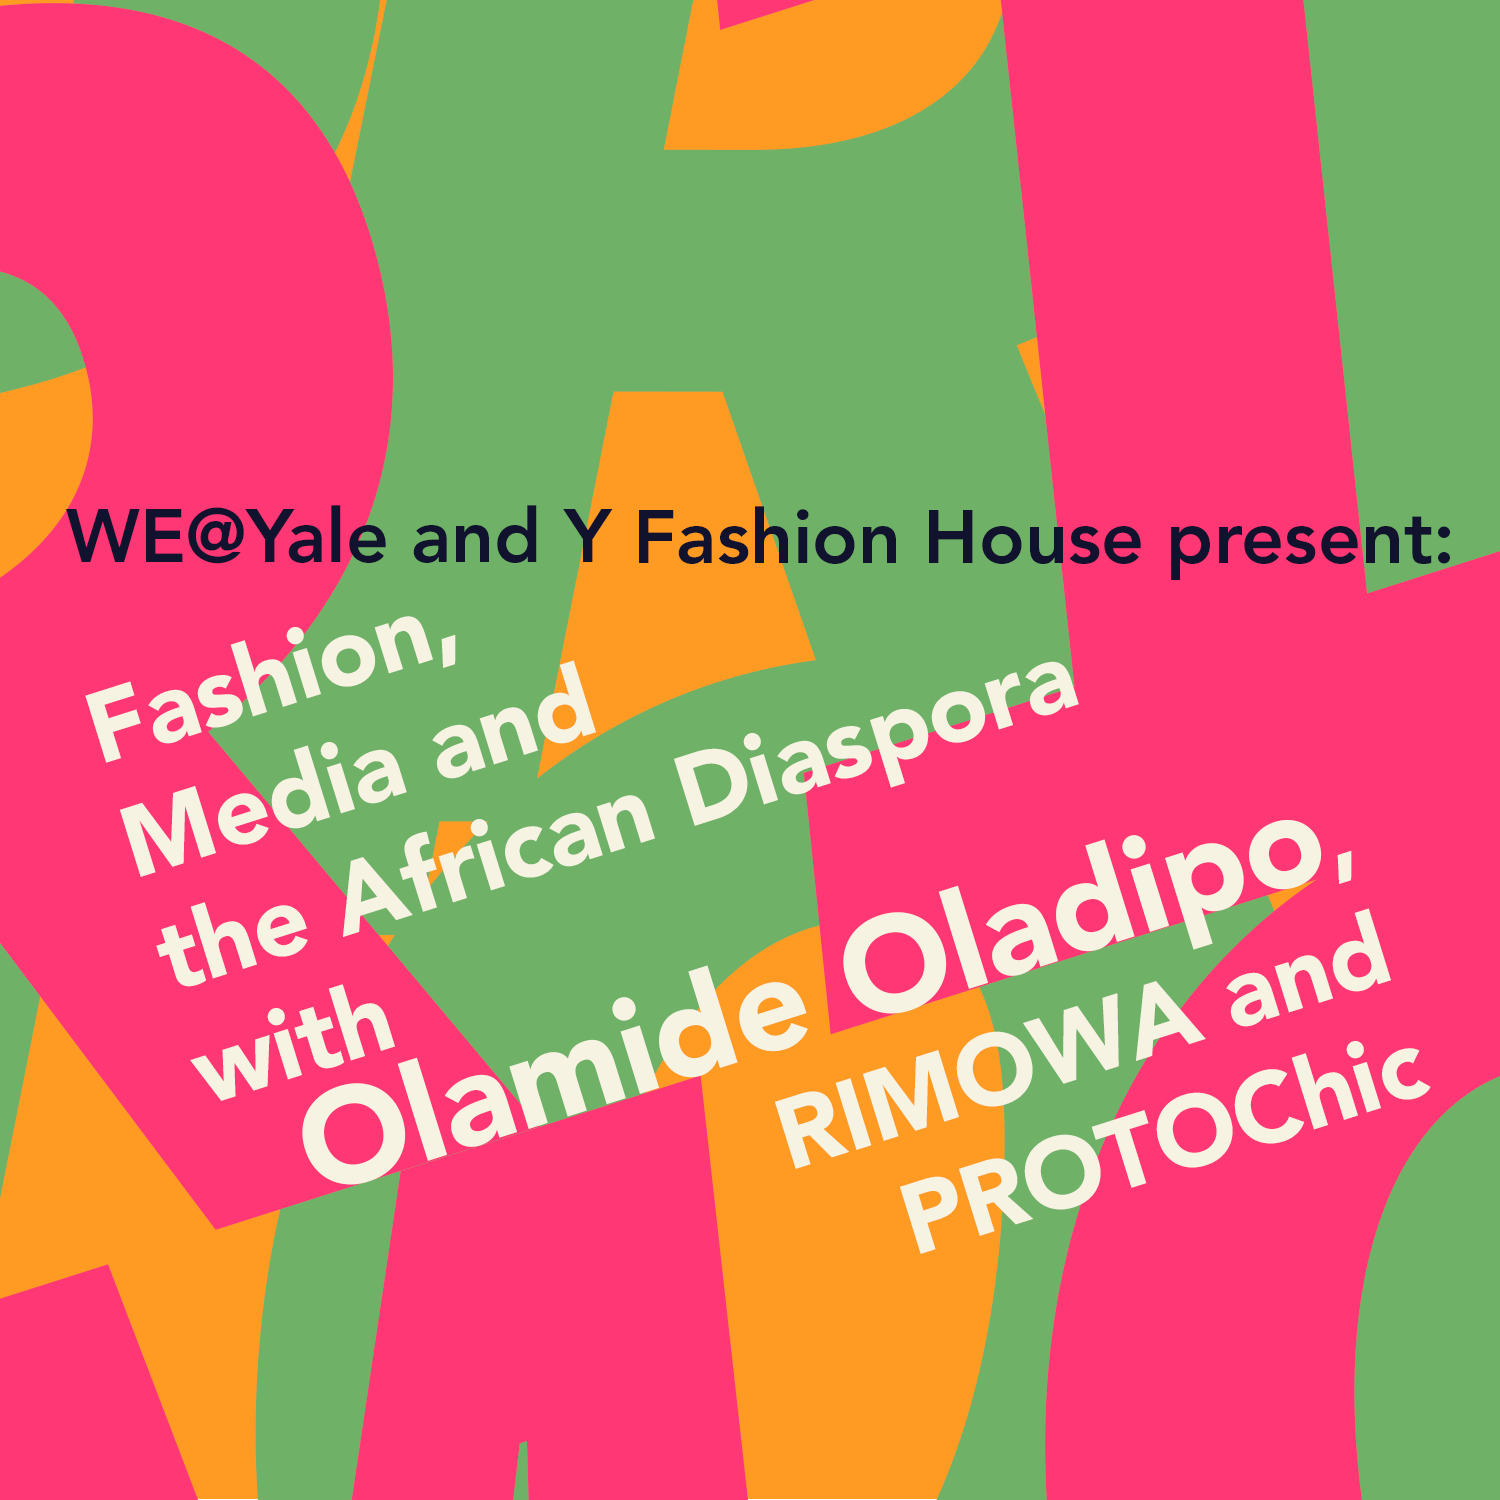 Olamide Oladipo banner.png